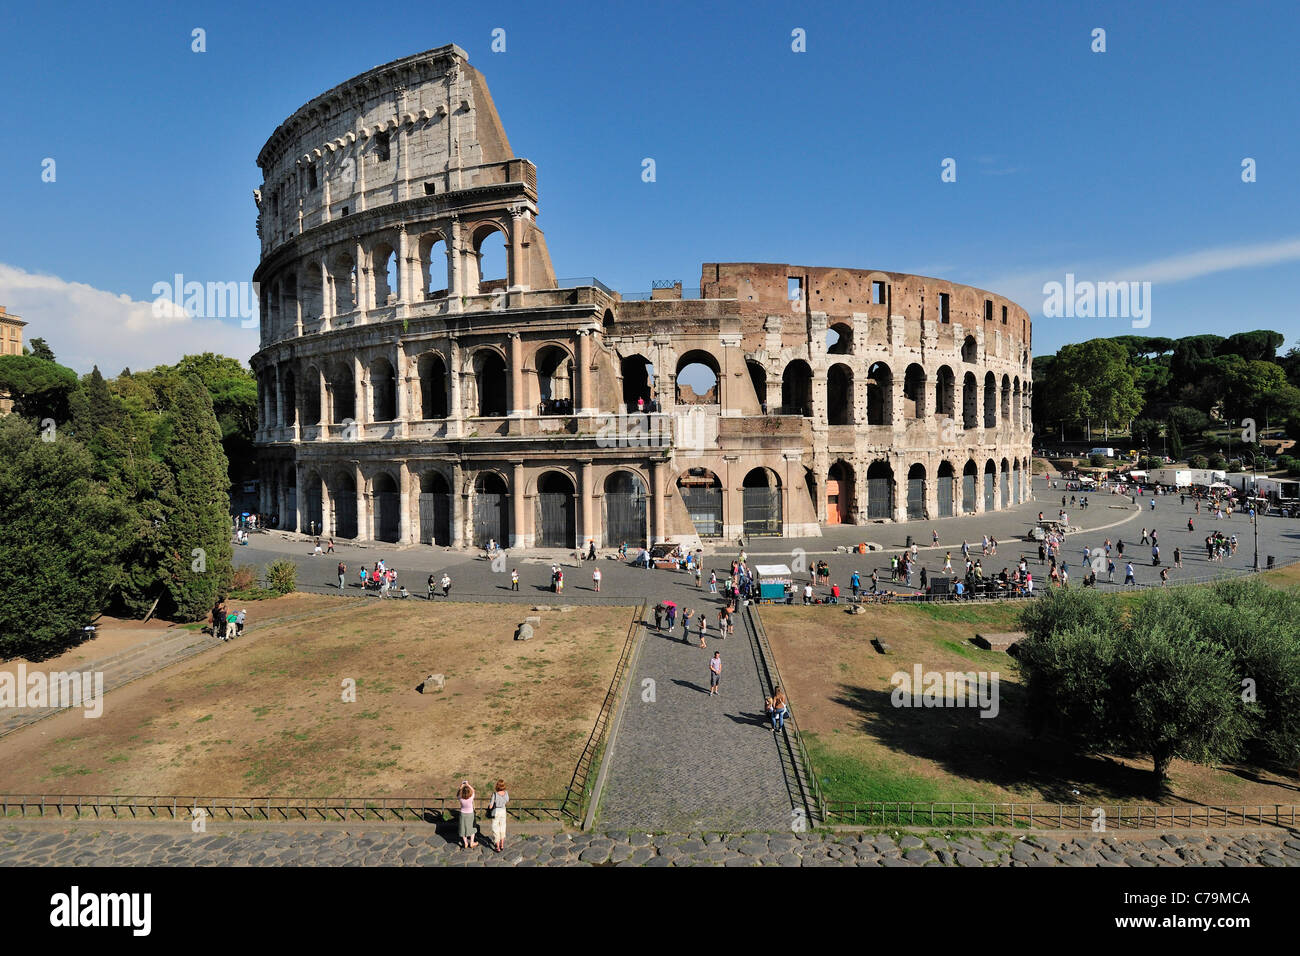 Rome. Italy. The Colosseum. - Stock Image